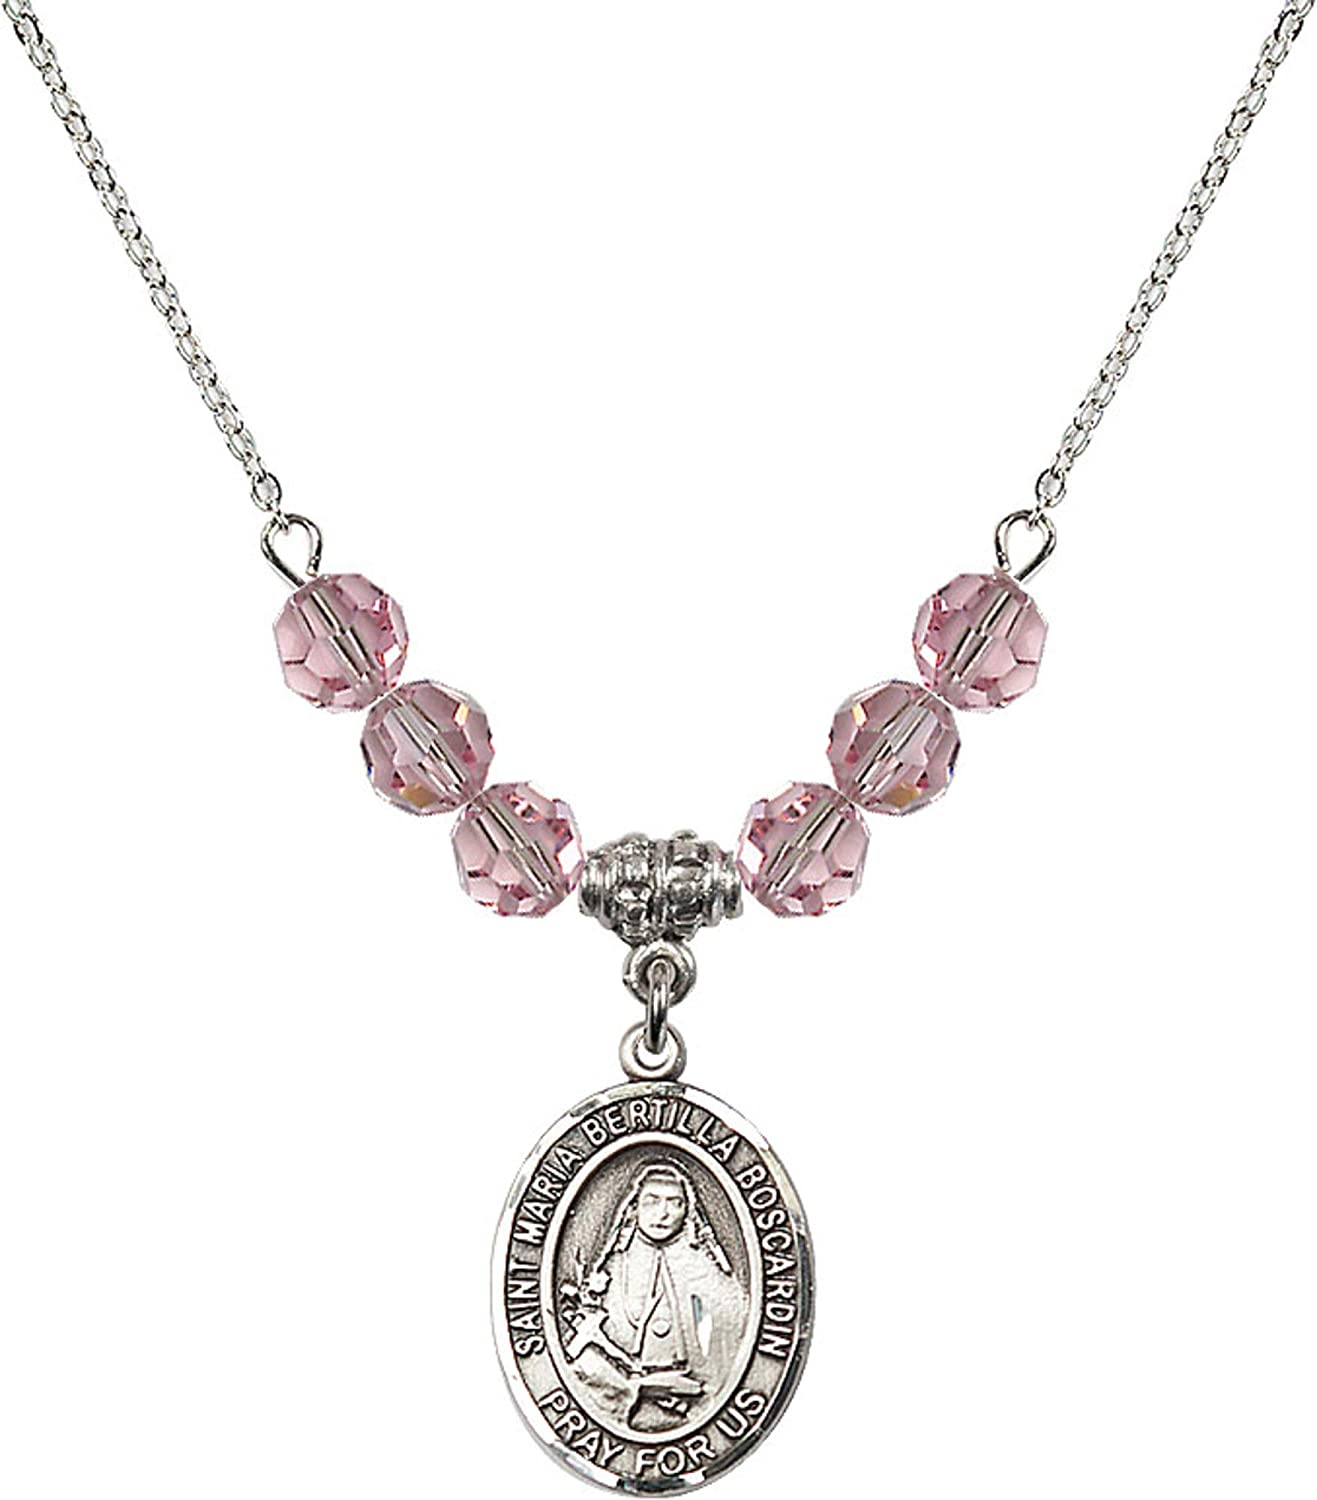 18 Inch Rhodium Plated Necklace w// 6mm Light Rose Pink October Birth Month Stone Beads /& Saint Maria Bertilla Boscardin Charm